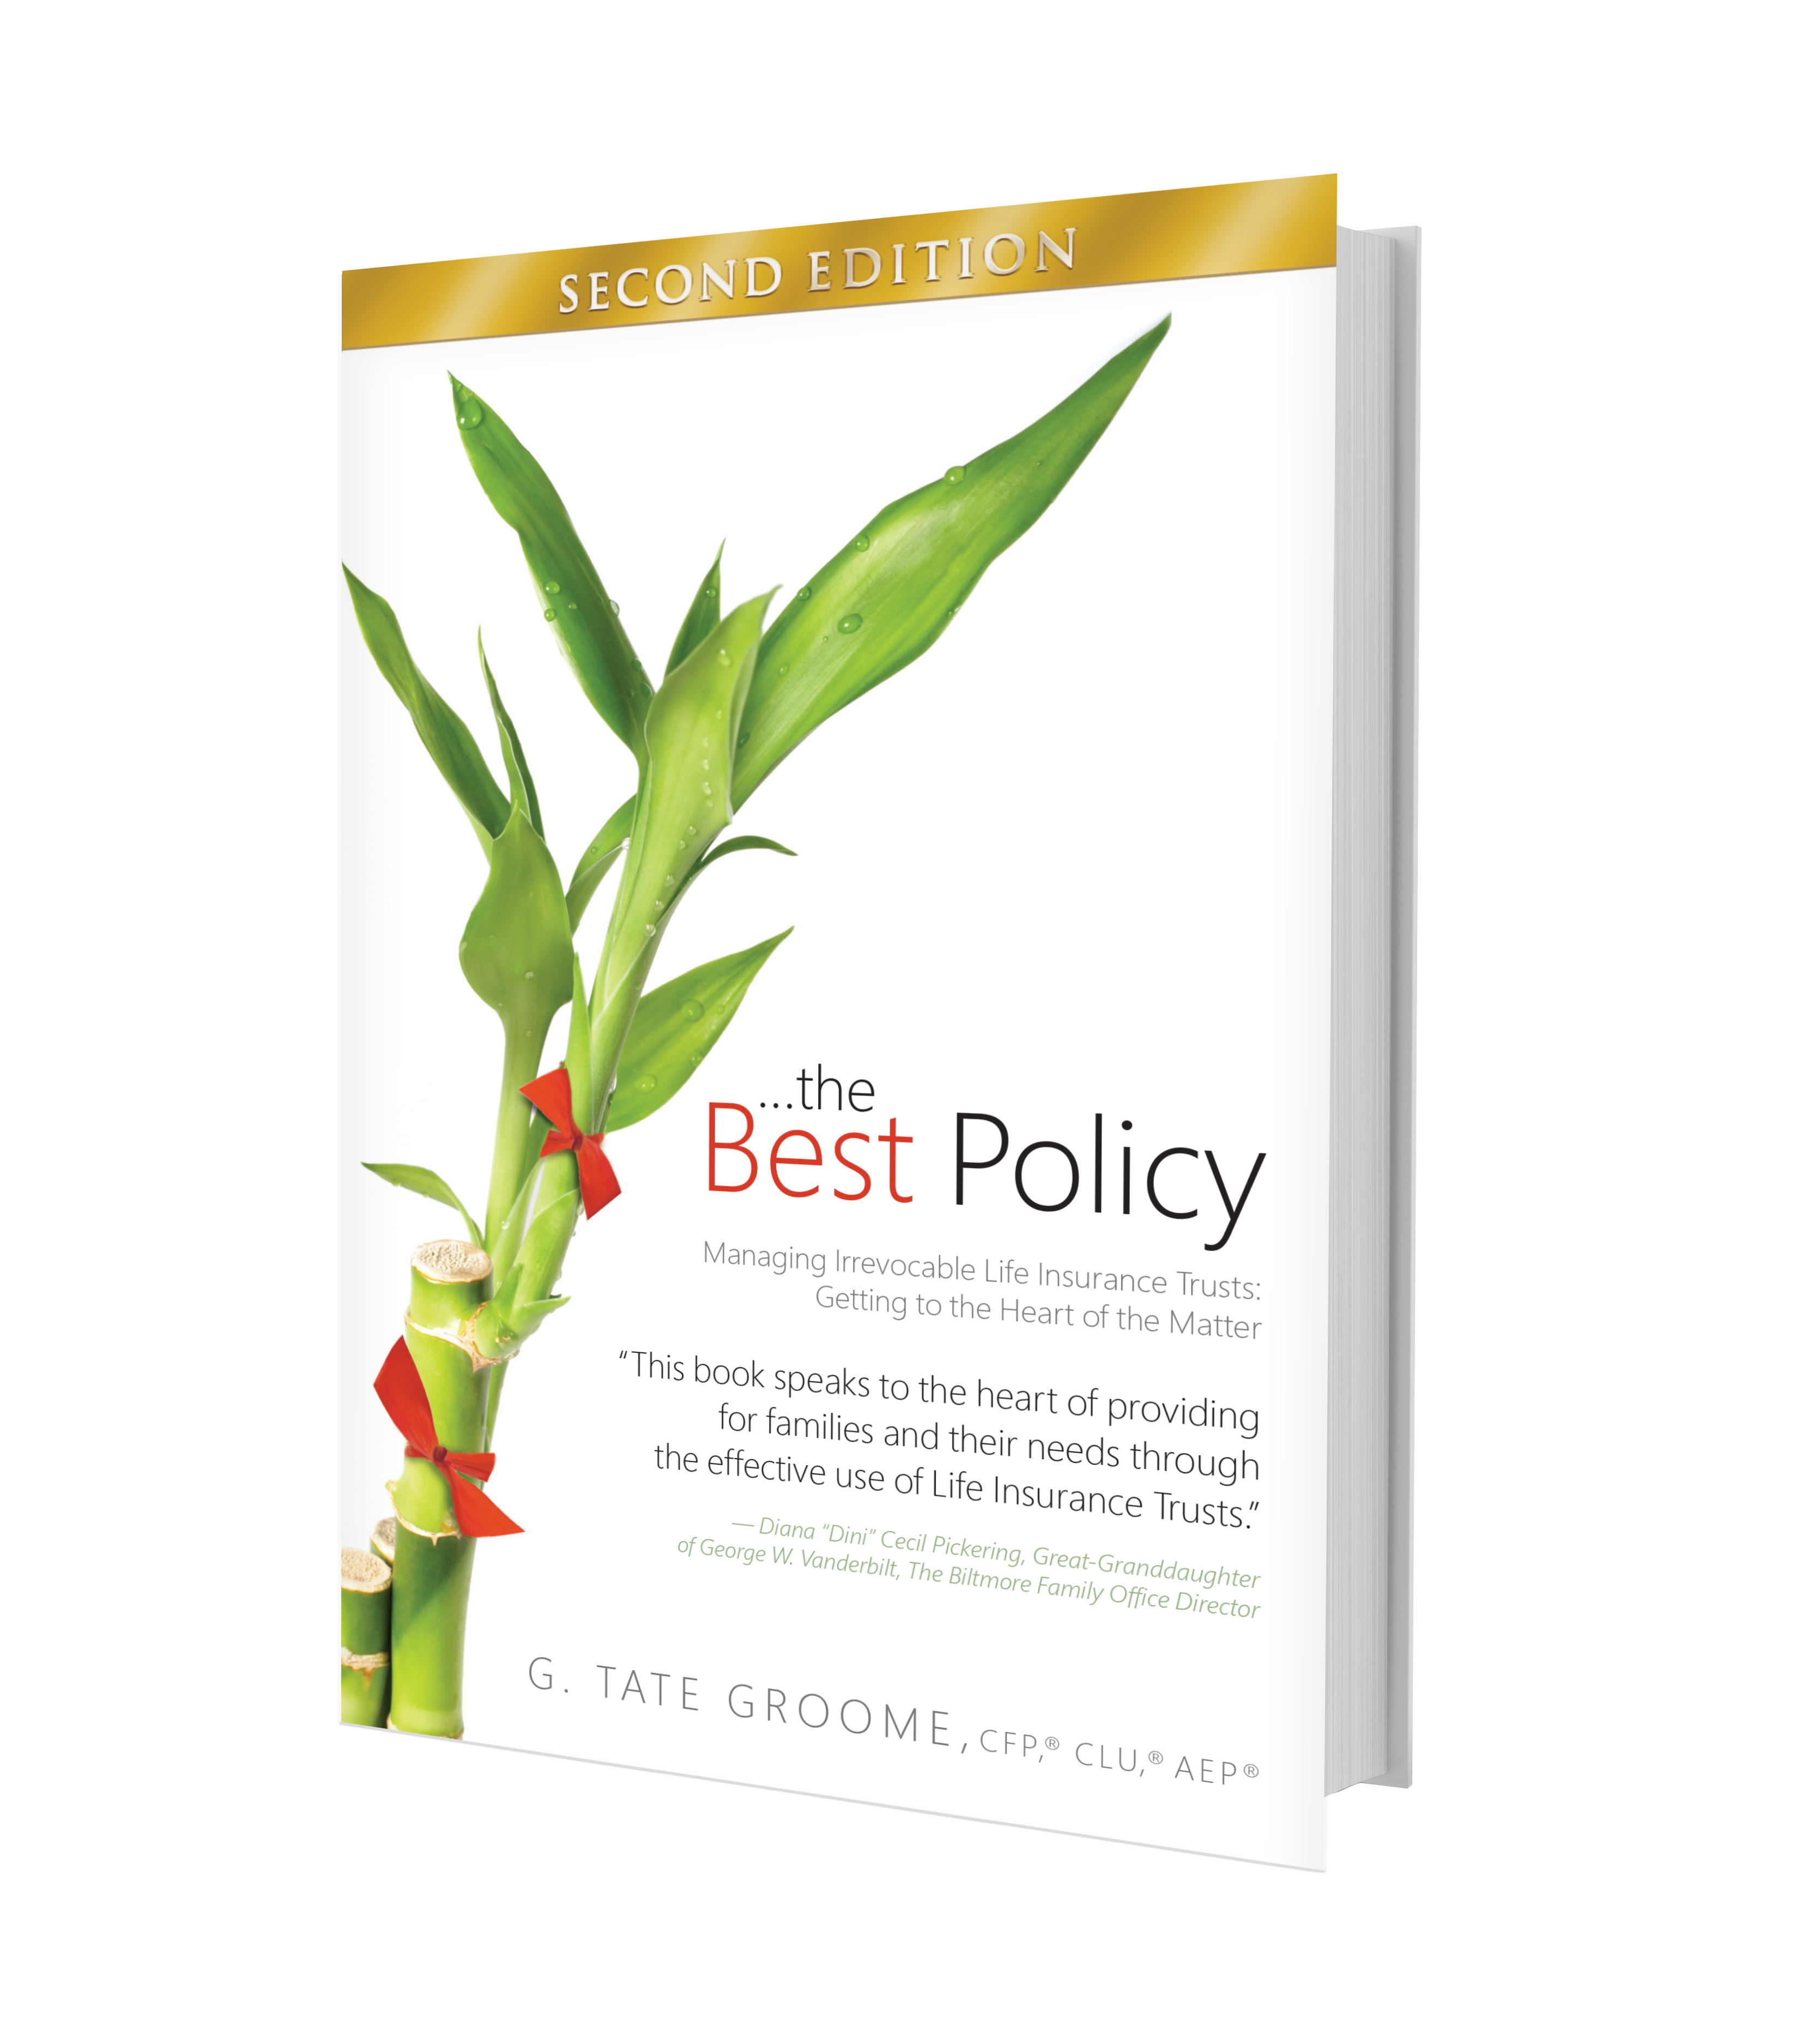 ...the Best Policy: Managing Irrevocable Life Insurance Trusts: Getting to the Heart of the Matter